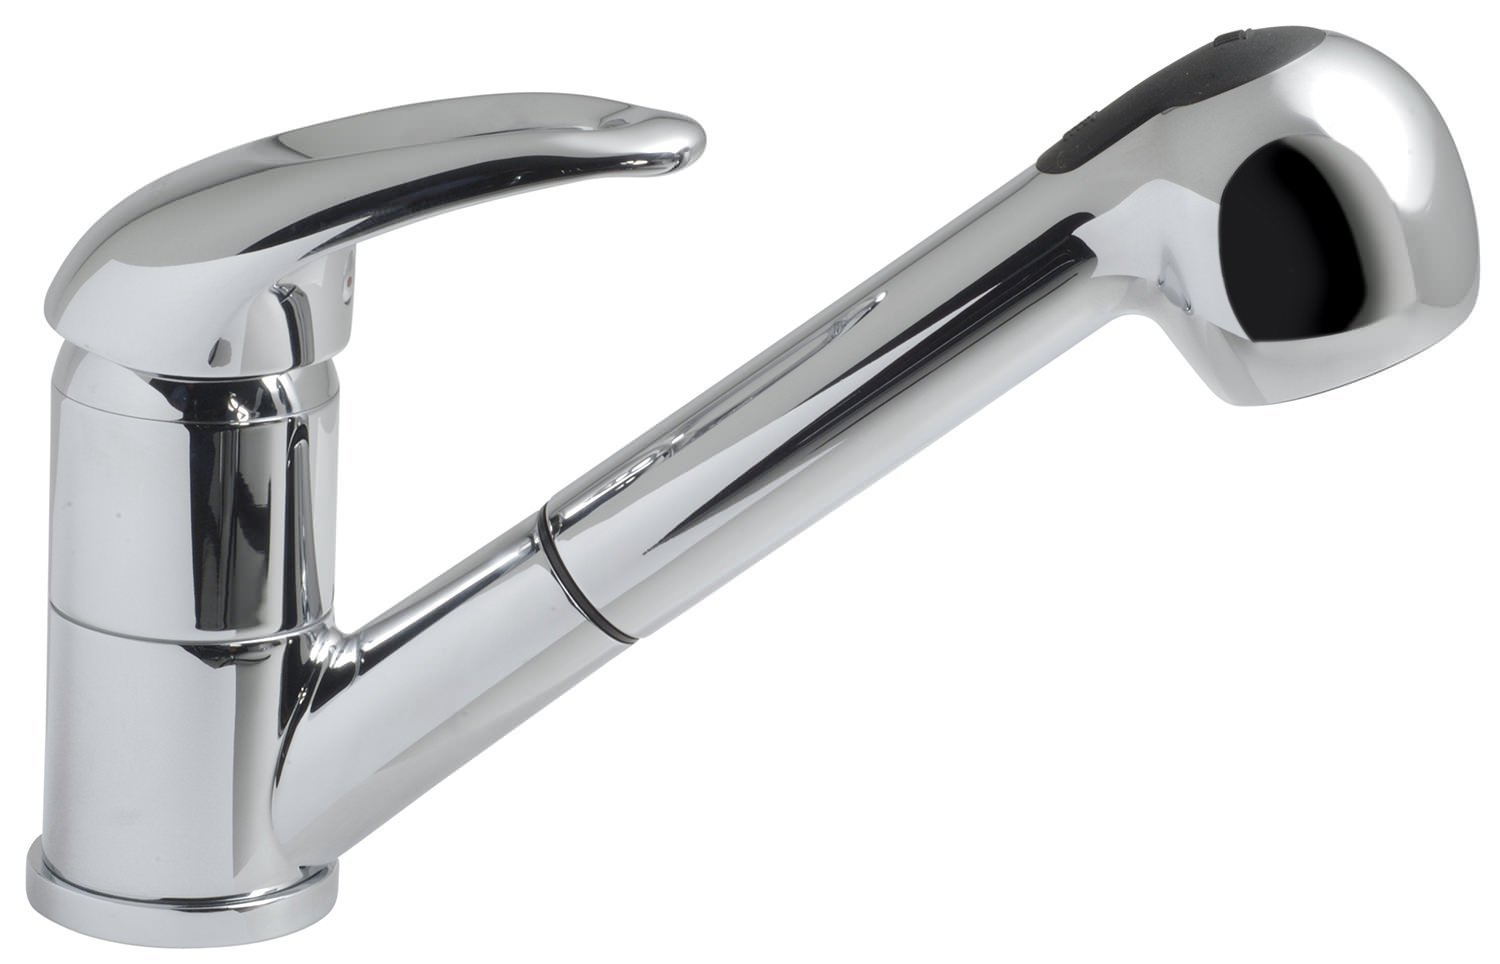 Vado Life Sink Mixer With Swivel Spout: Vado Magma Mono Sink Mixer Tap Inc Pull Out Hand Spray